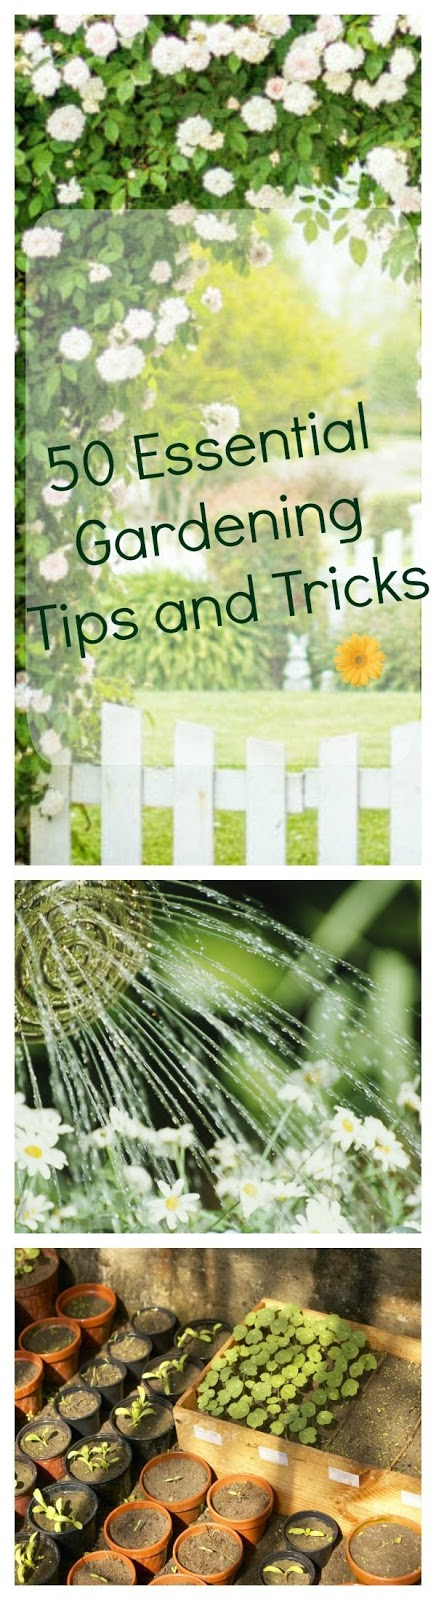 Garden Therapy Things To Fix Up Your Yard